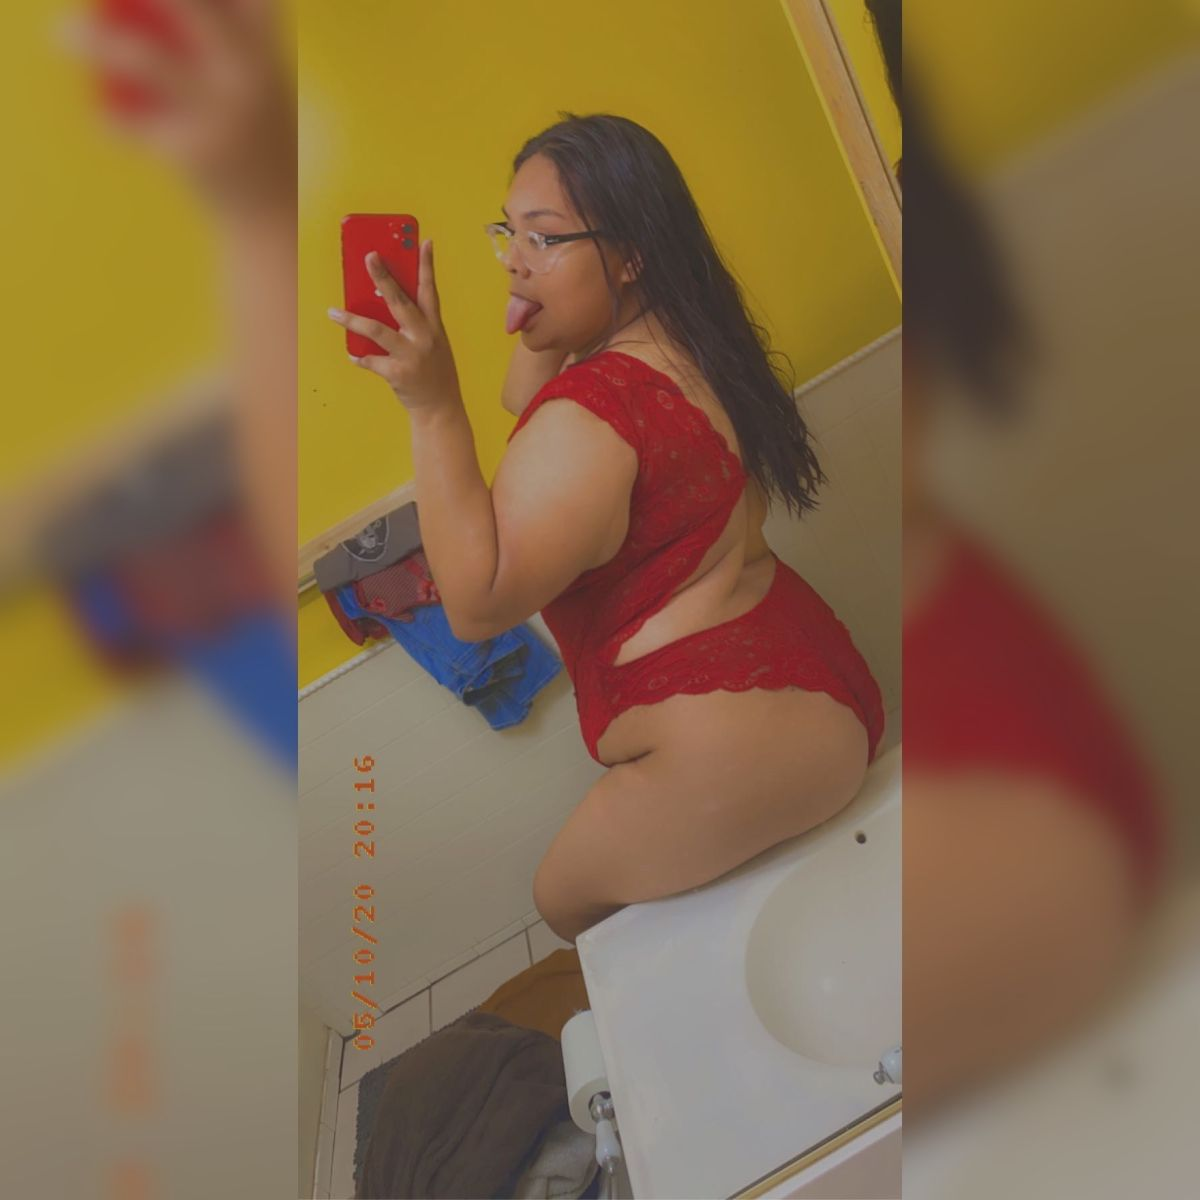 Free nudes of Klickss onlyfans leaked